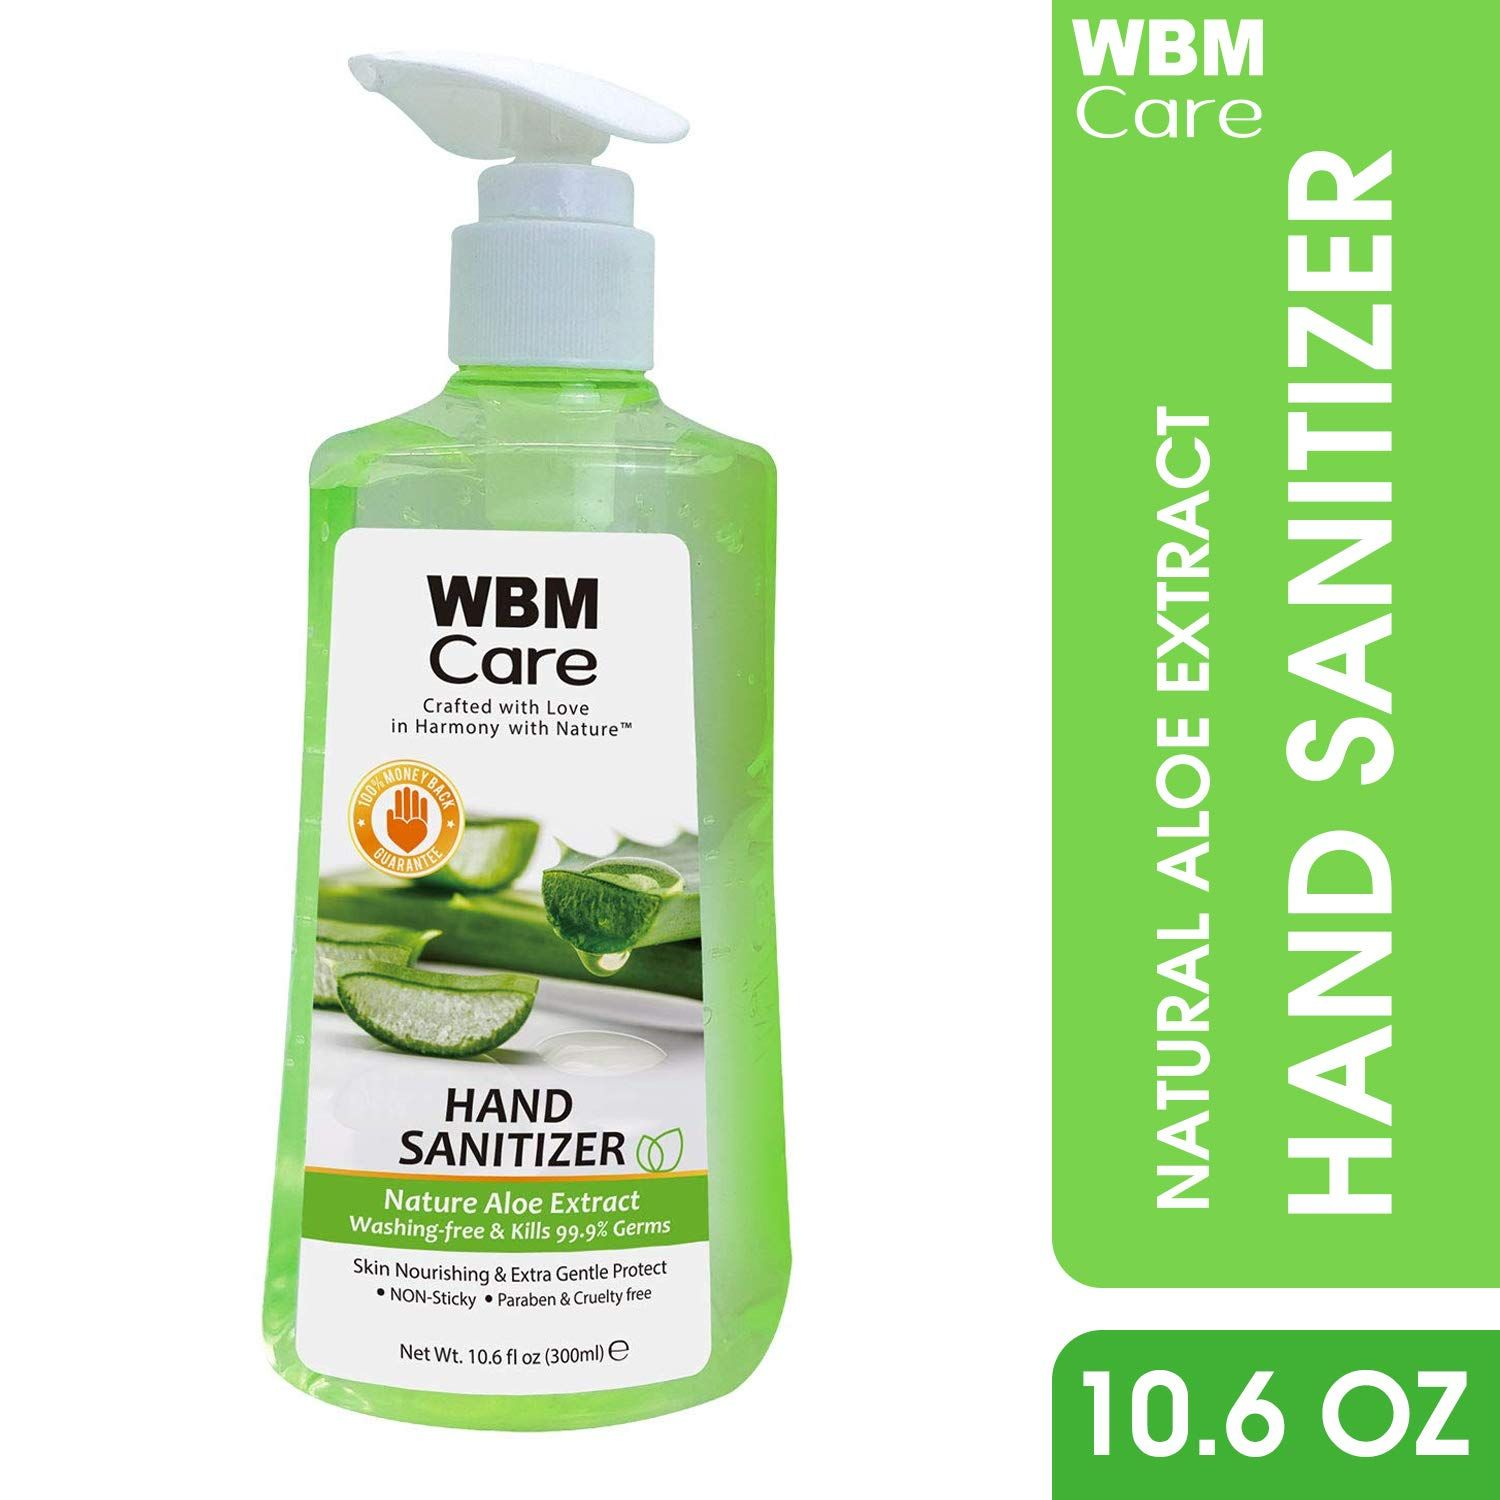 Wbmcare Skin Nourishing Hand Sanitizer Easy To Keep Hands Clean